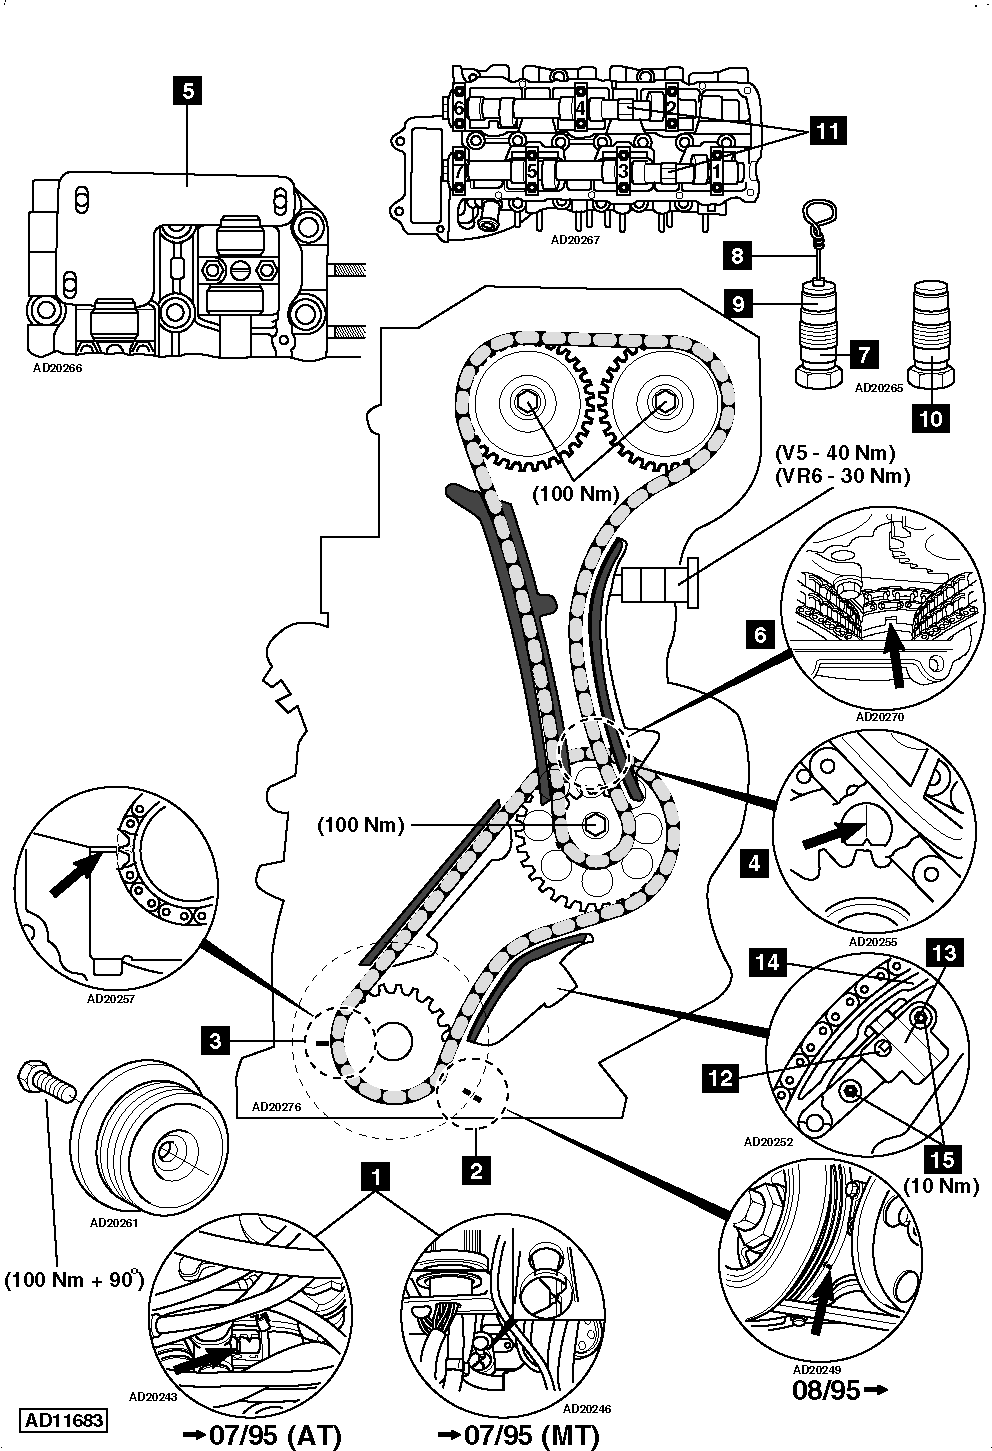 wrg 4500] 95 vw golf engine diagramhow to replace timing chain on vw golf 4 2 3 and 2 3 4motion